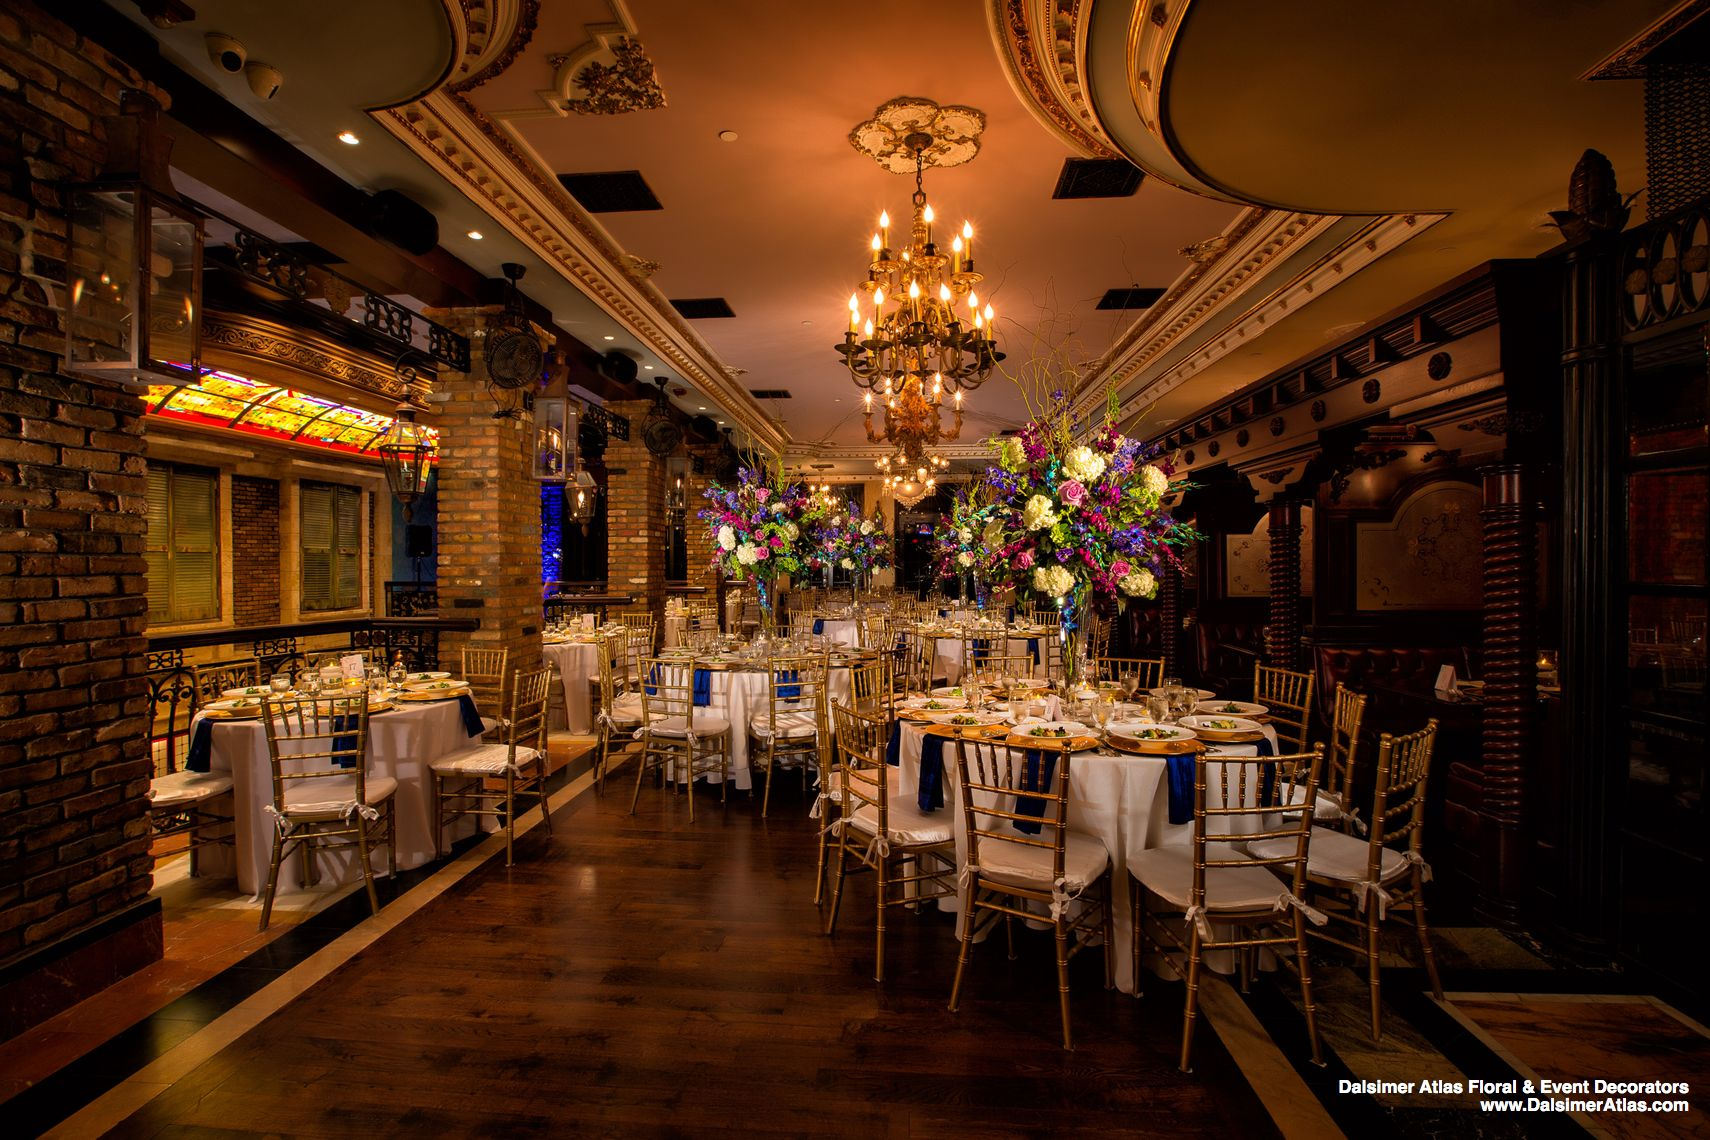 wedding-florist-flowers-decorations-wedding-cruz-building-miami-florida-dalsimer-atlas-385